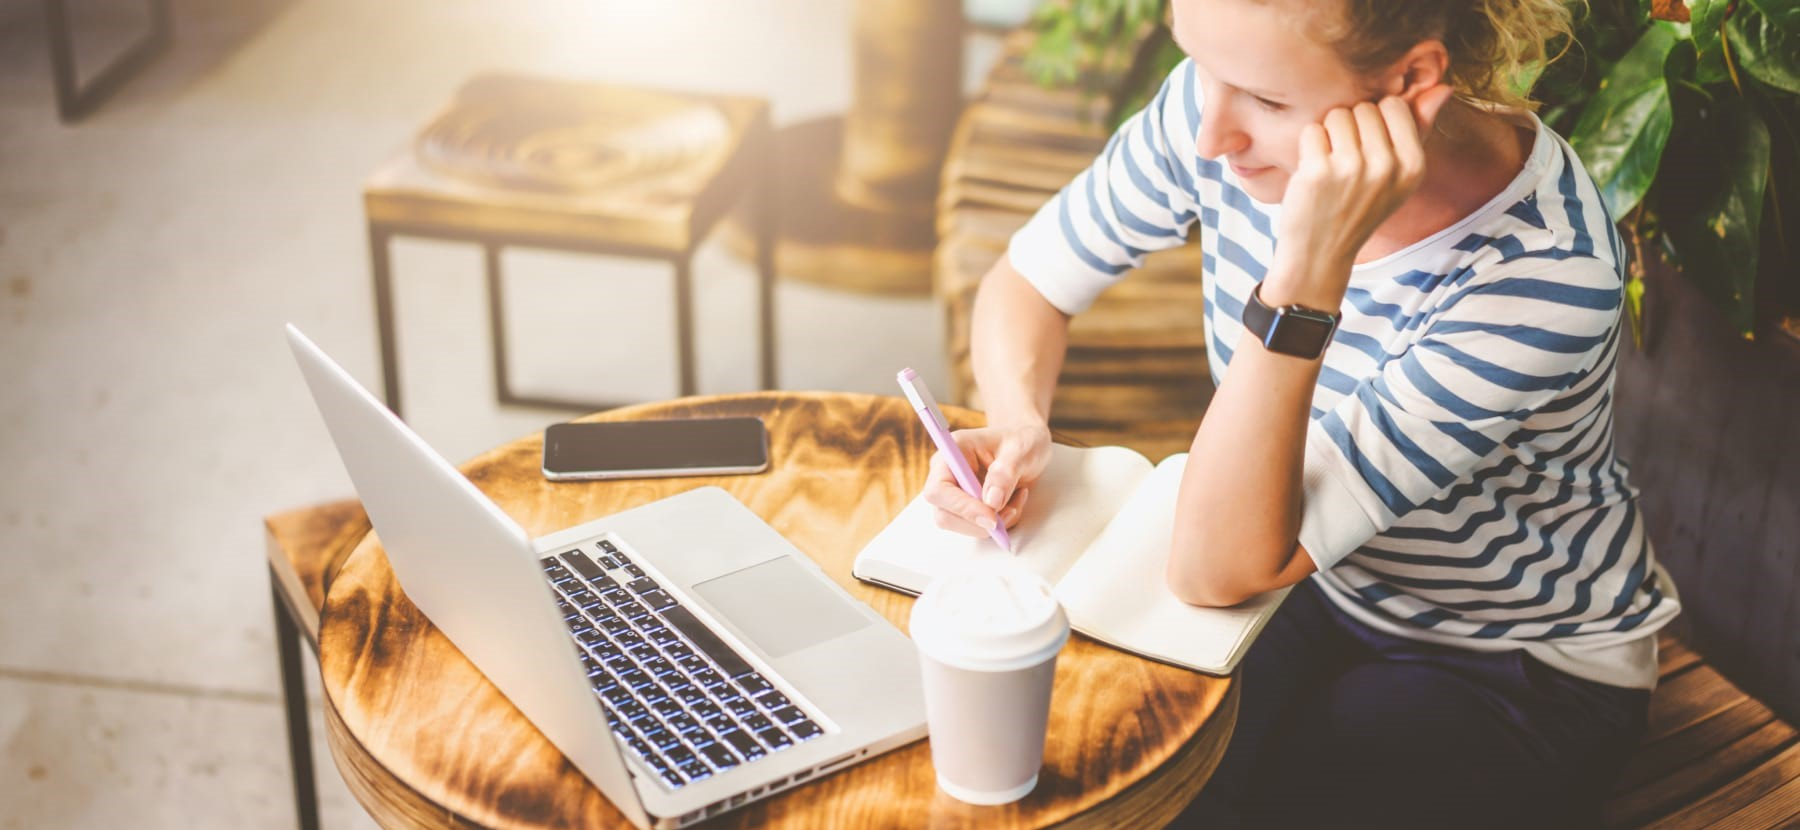 Return to office: creating a great employee experience for remote, hybrid, and in-office workers